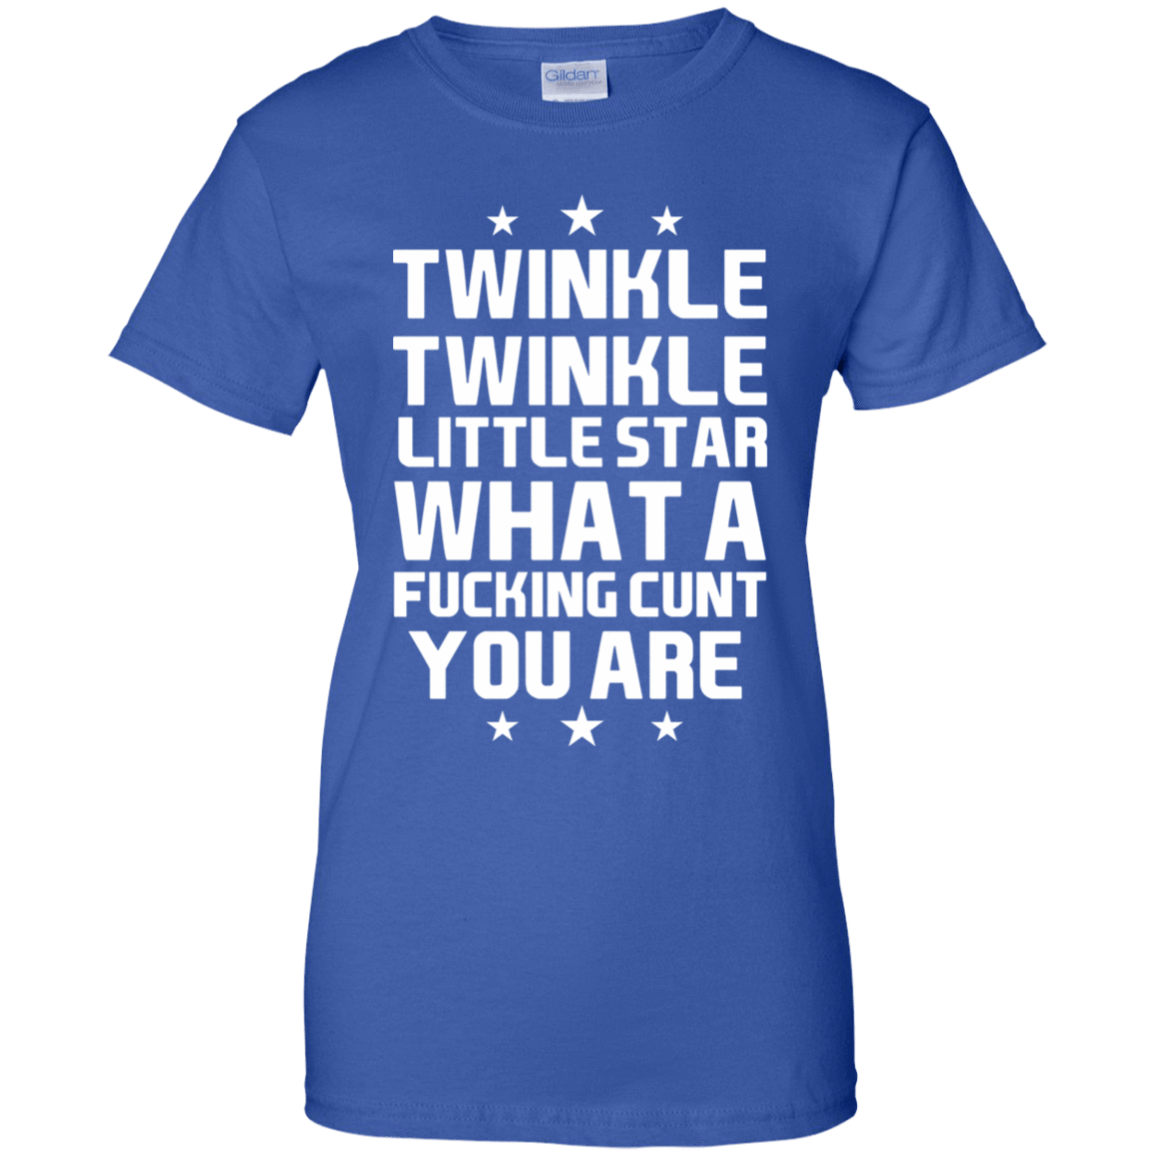 Twinkle Twinkle Little Star What A Fucking Cunt You Are T-Shirts, Hoodie, Tank 939-9264-77772957-44807 - Tee Ript